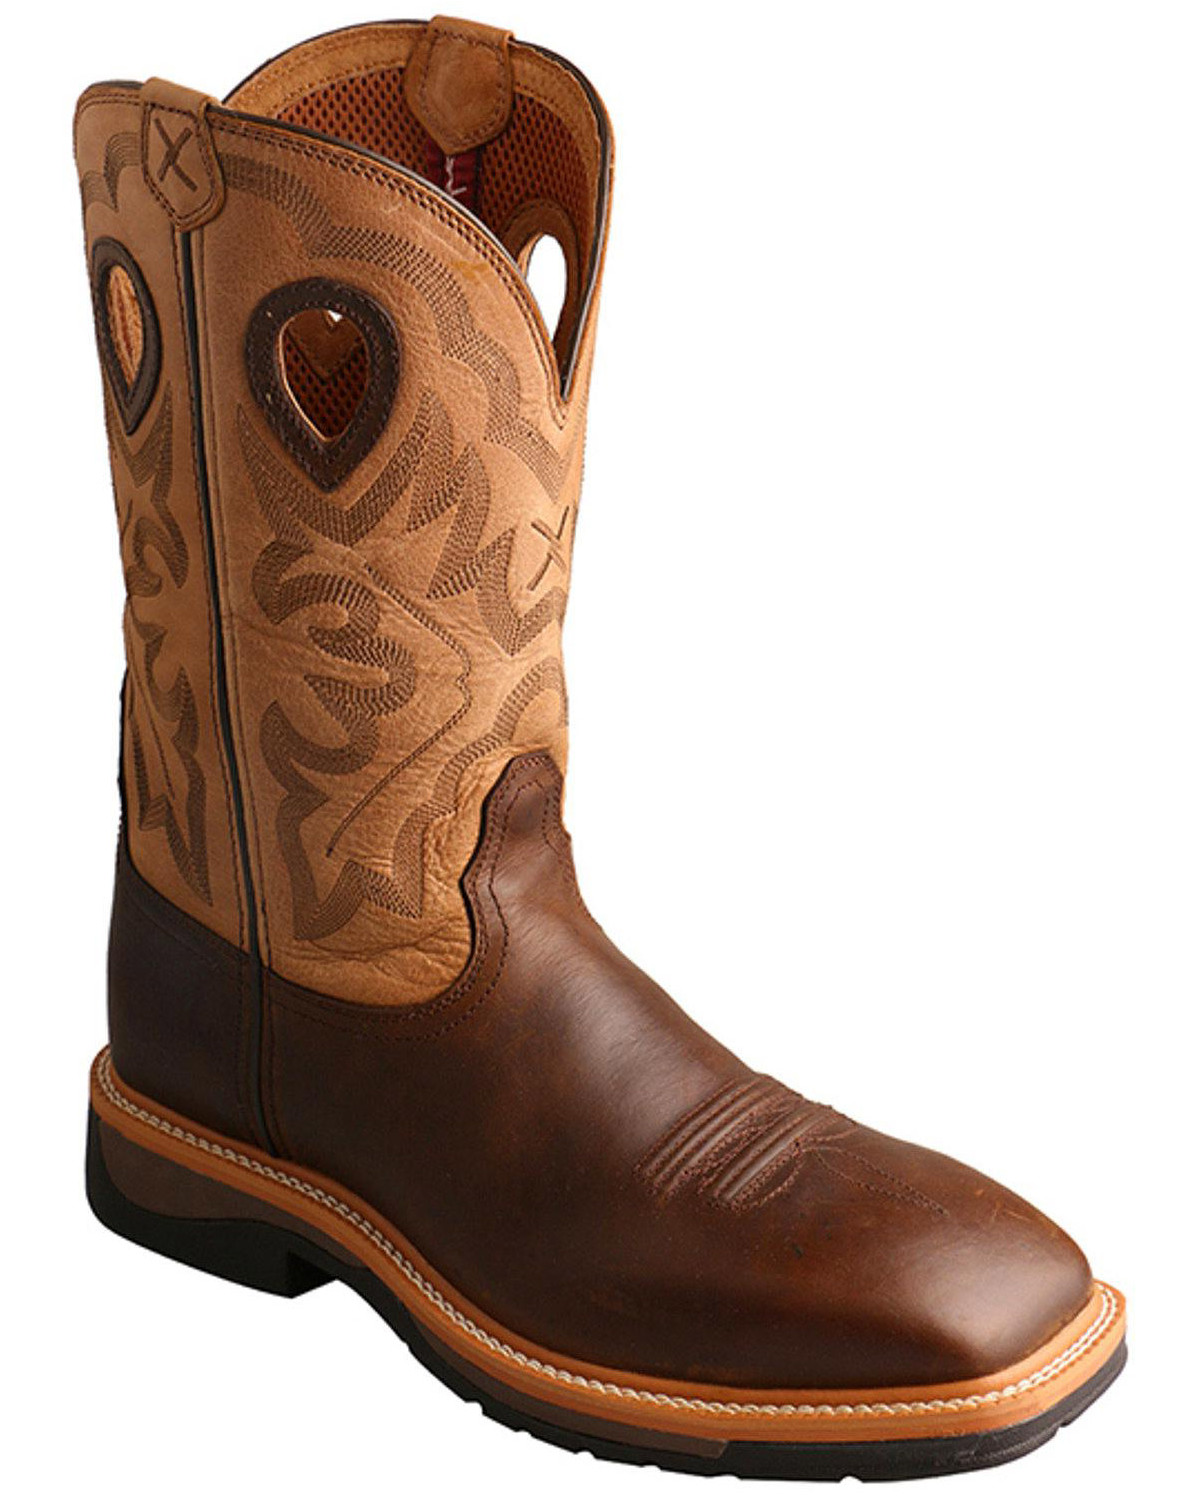 Clearance Cowboy Boots & Shoes - Sheplers